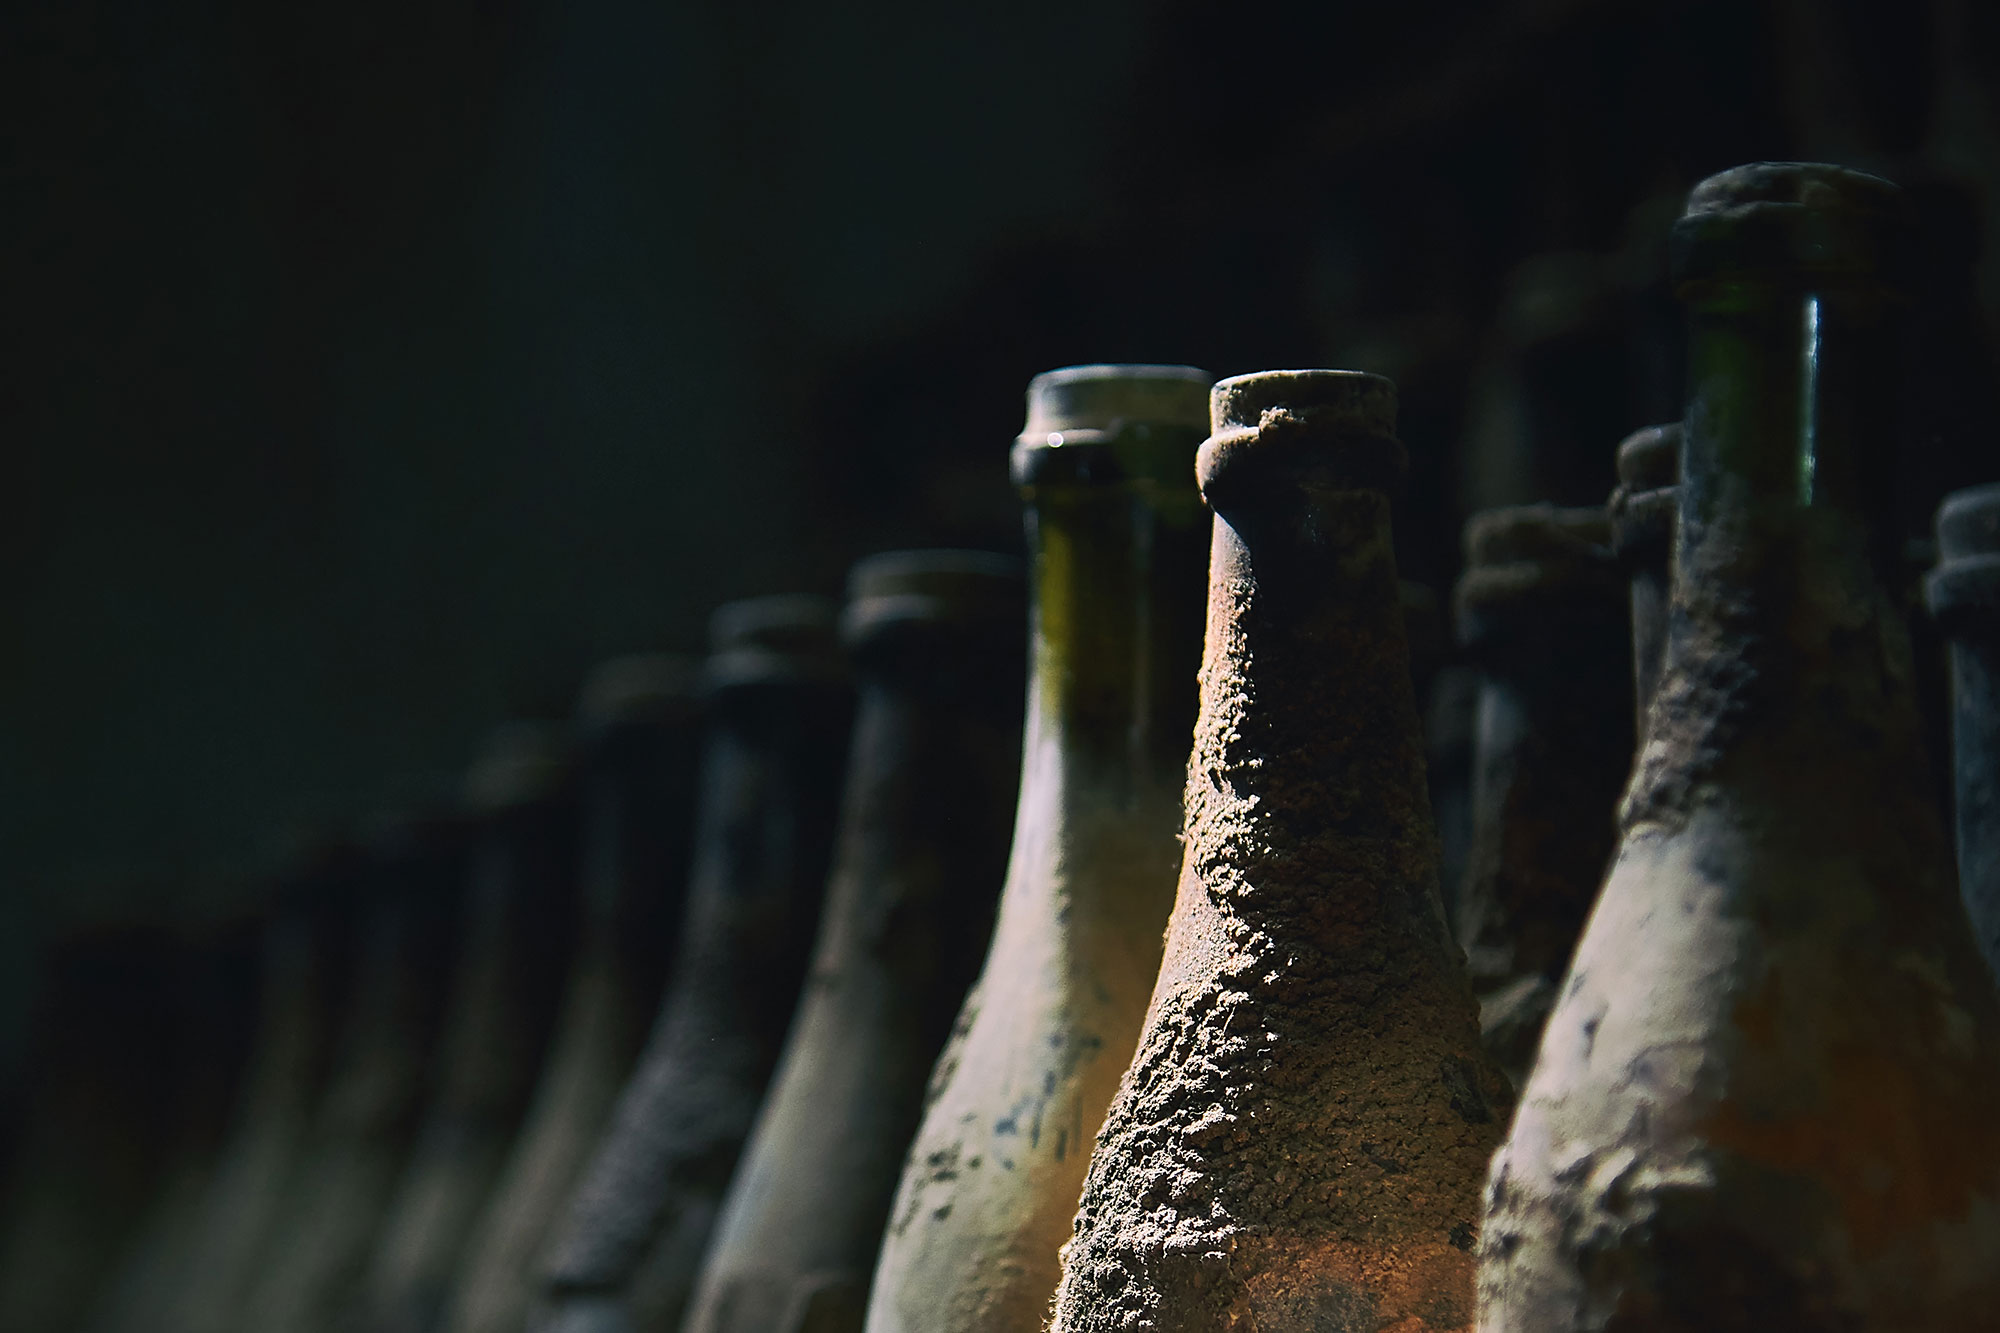 Old wine bottles in row